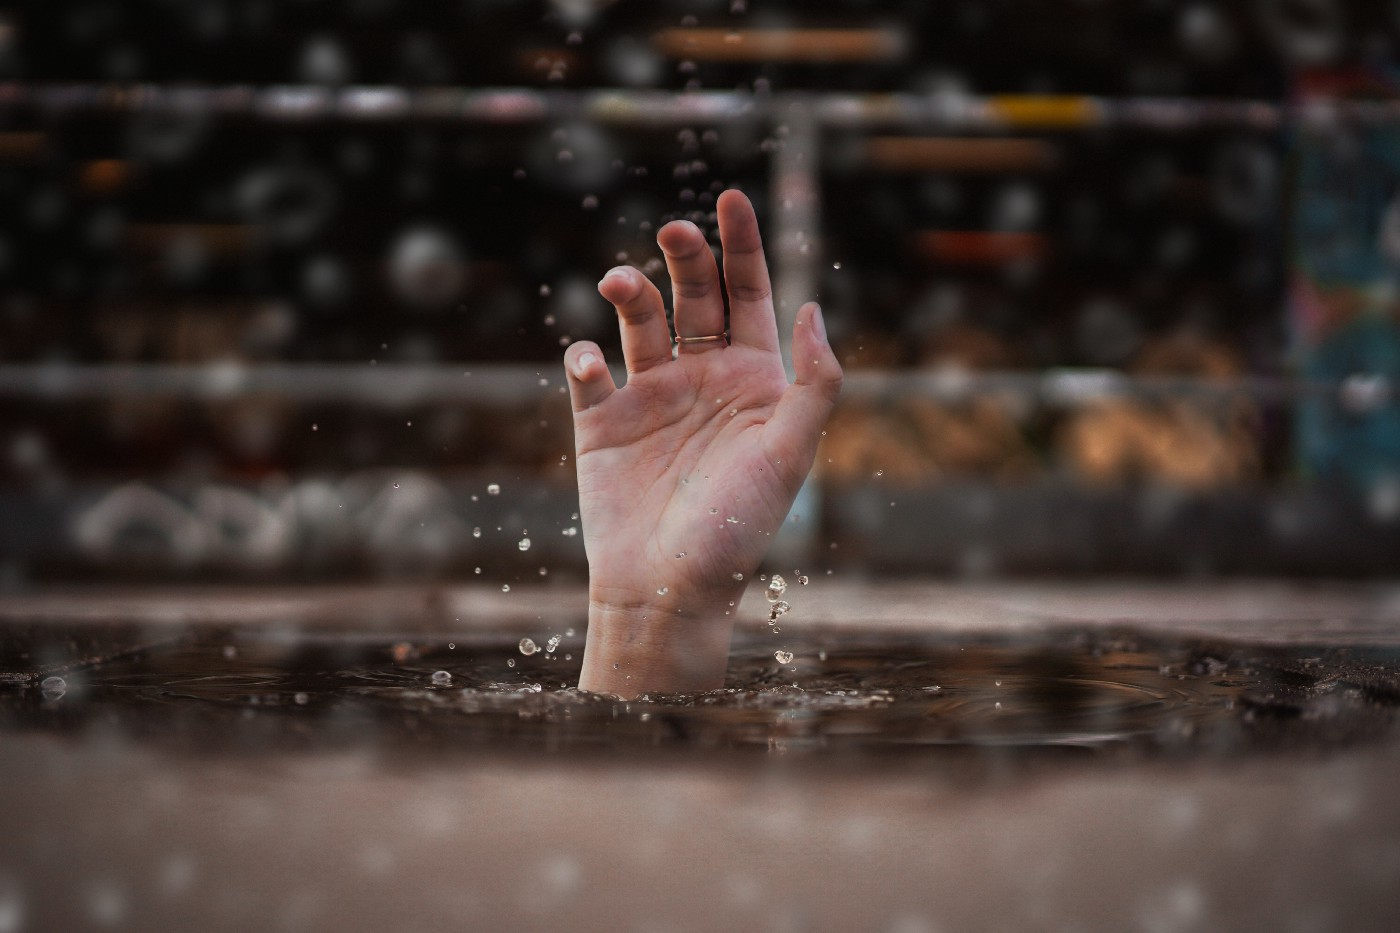 A picture of a hand sticking out of the water as though they're drowning.